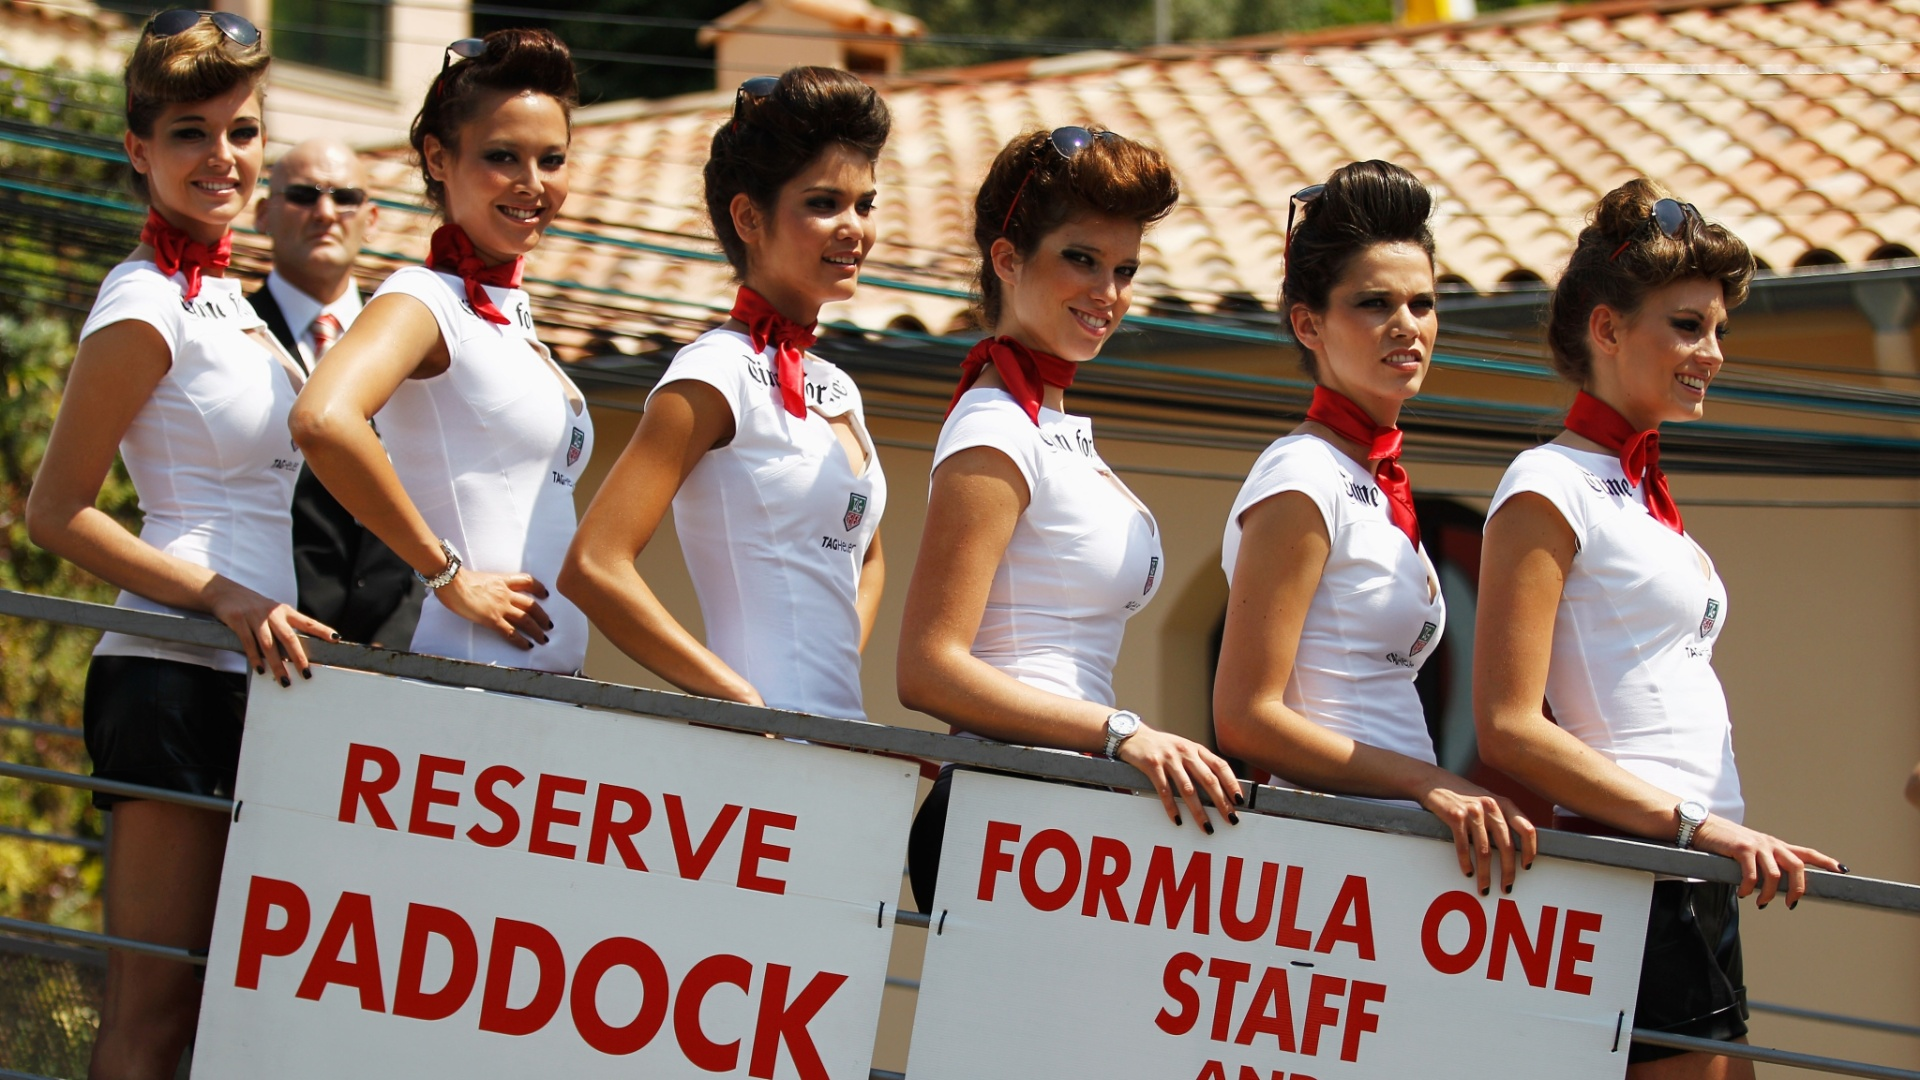 Grid girls brilharam no GP de Mnaco de Frmula 1